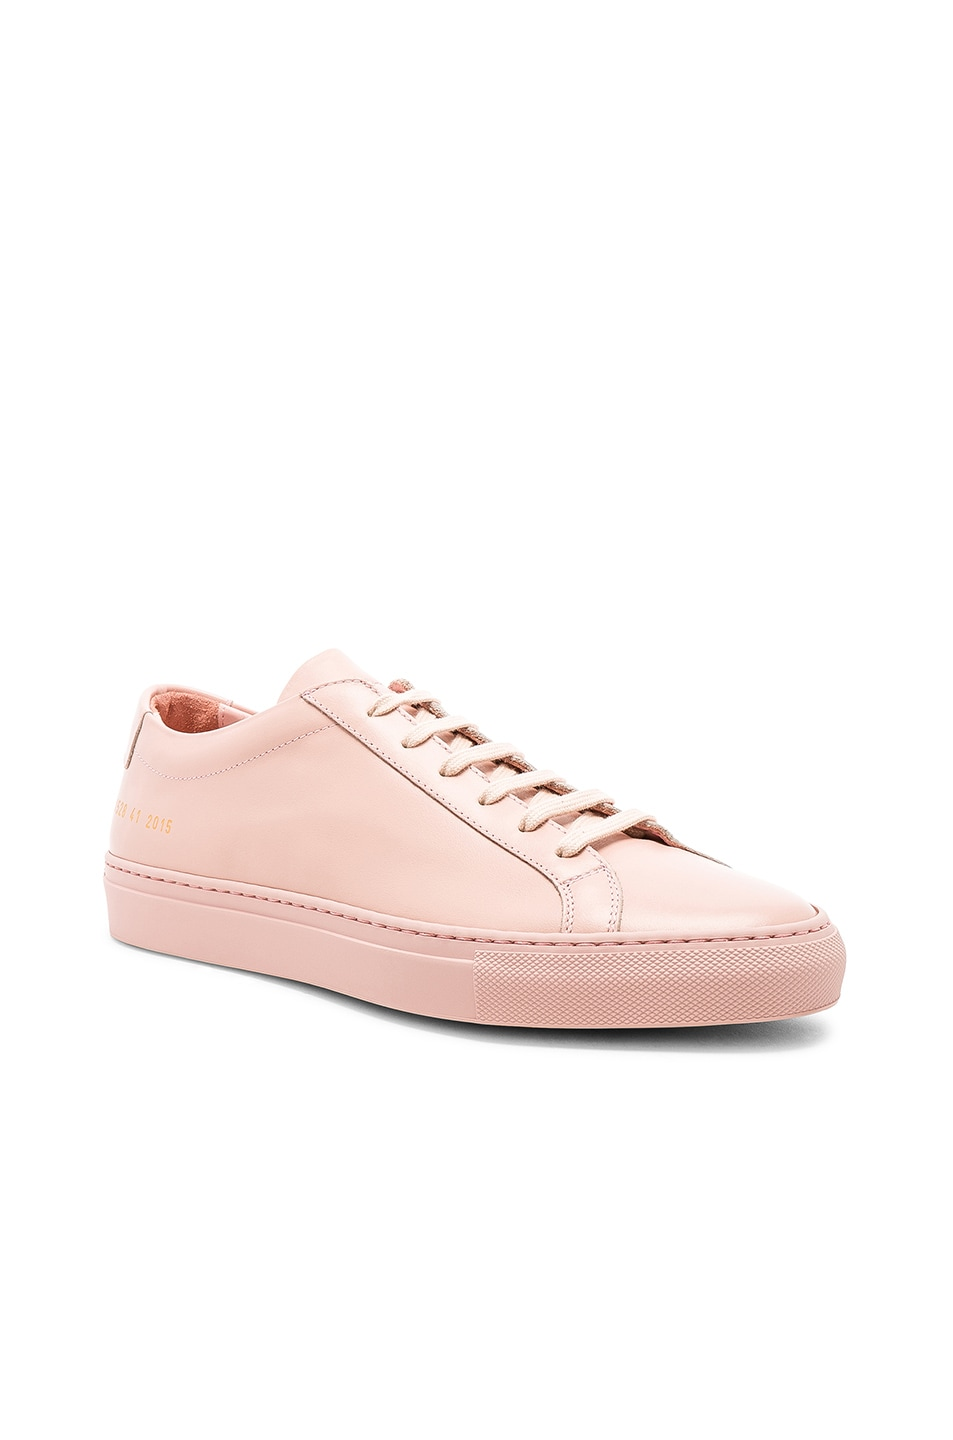 Image 1 of Common Projects Original Leather Achilles Low in Blush